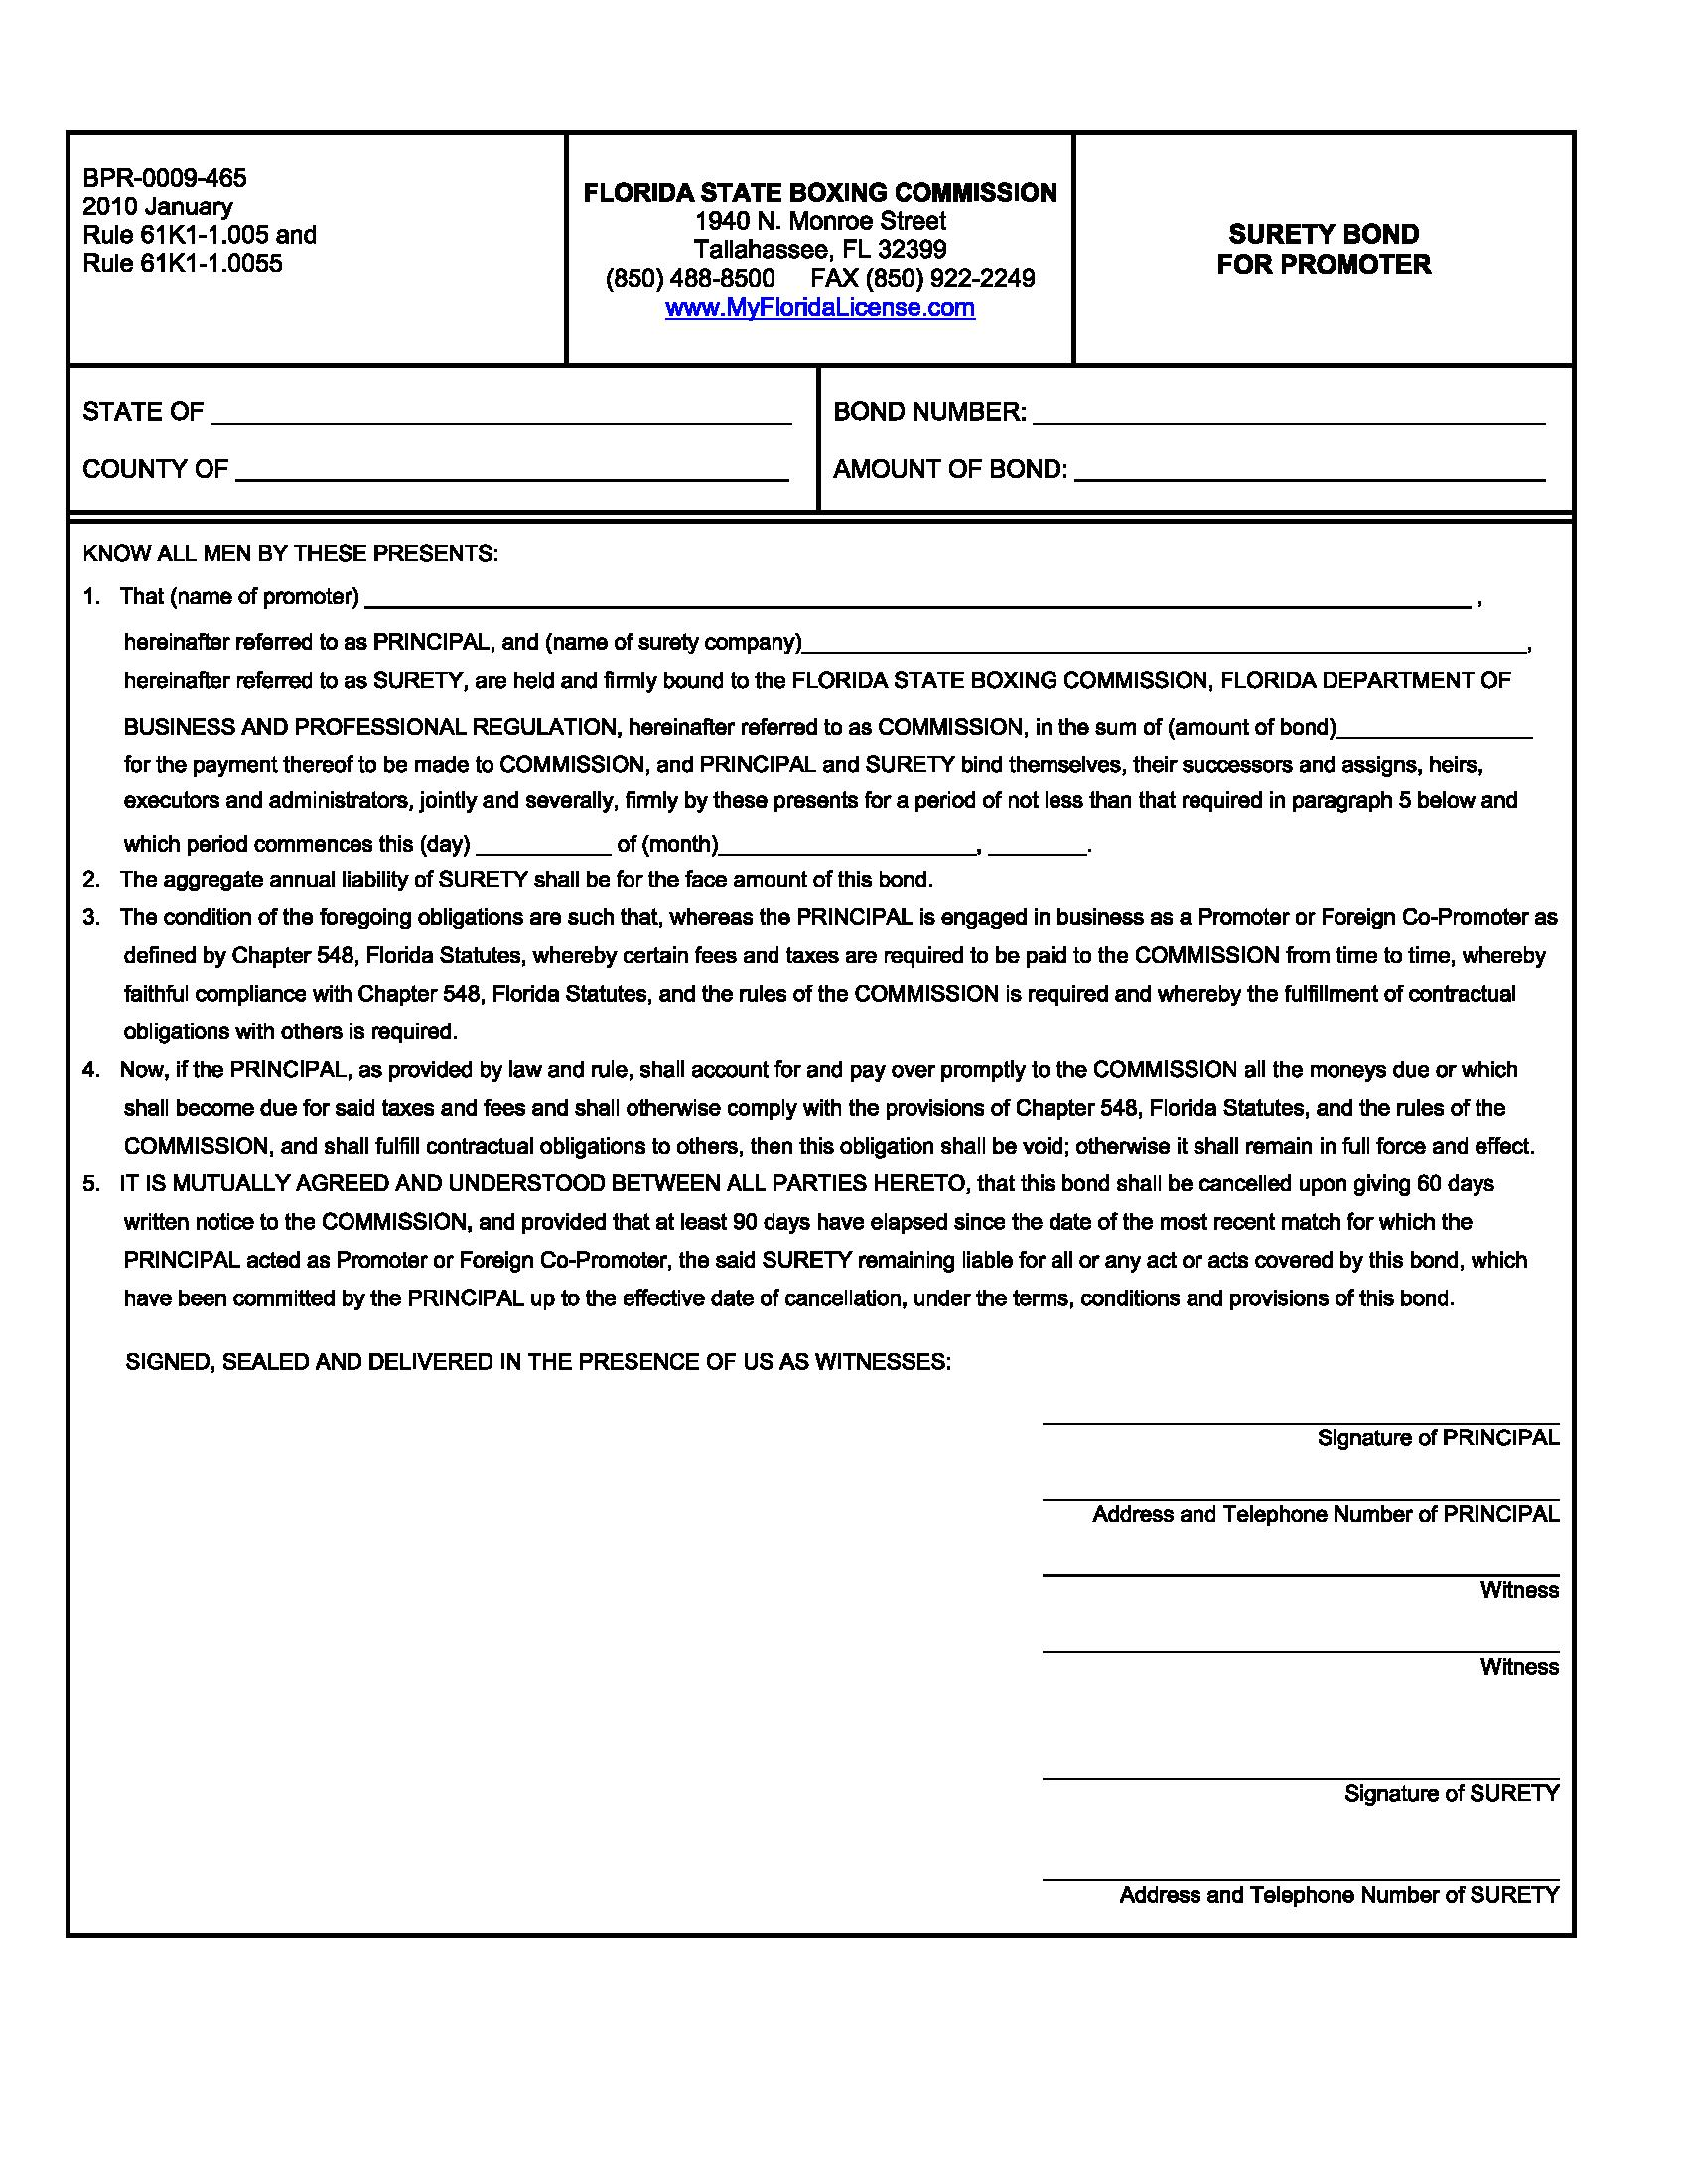 Florida State Boxing Commission, Florida Department of Business and Professional Regulation Boxing Promoter Bond sample image